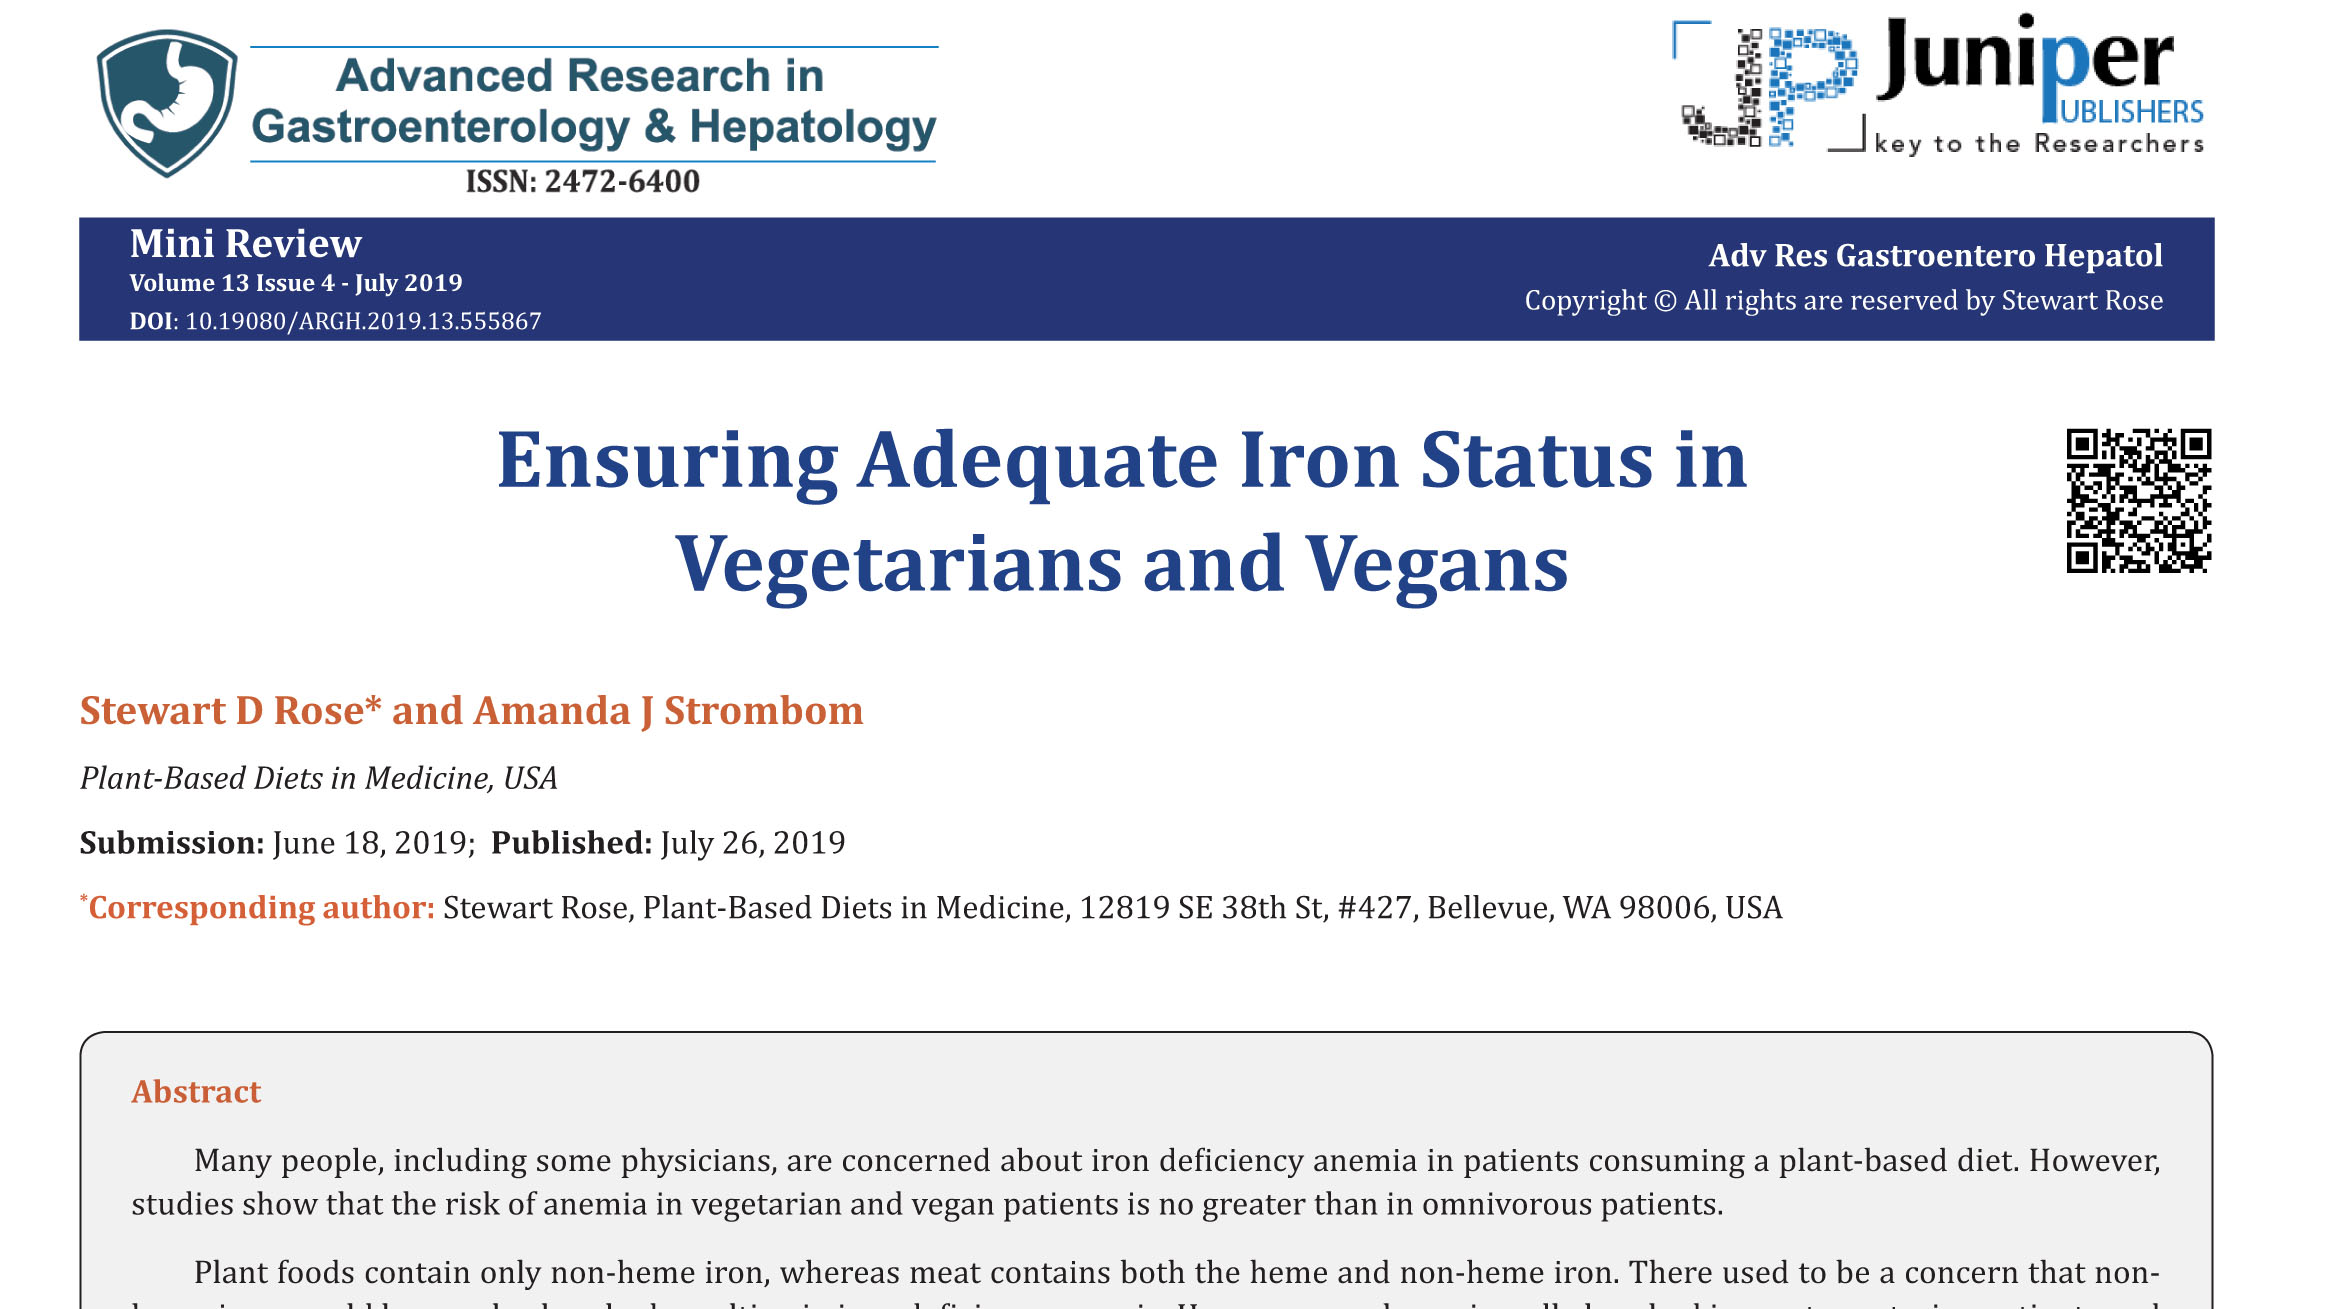 Ensuring Adequate Iron Status in Vegetarians and Vegans